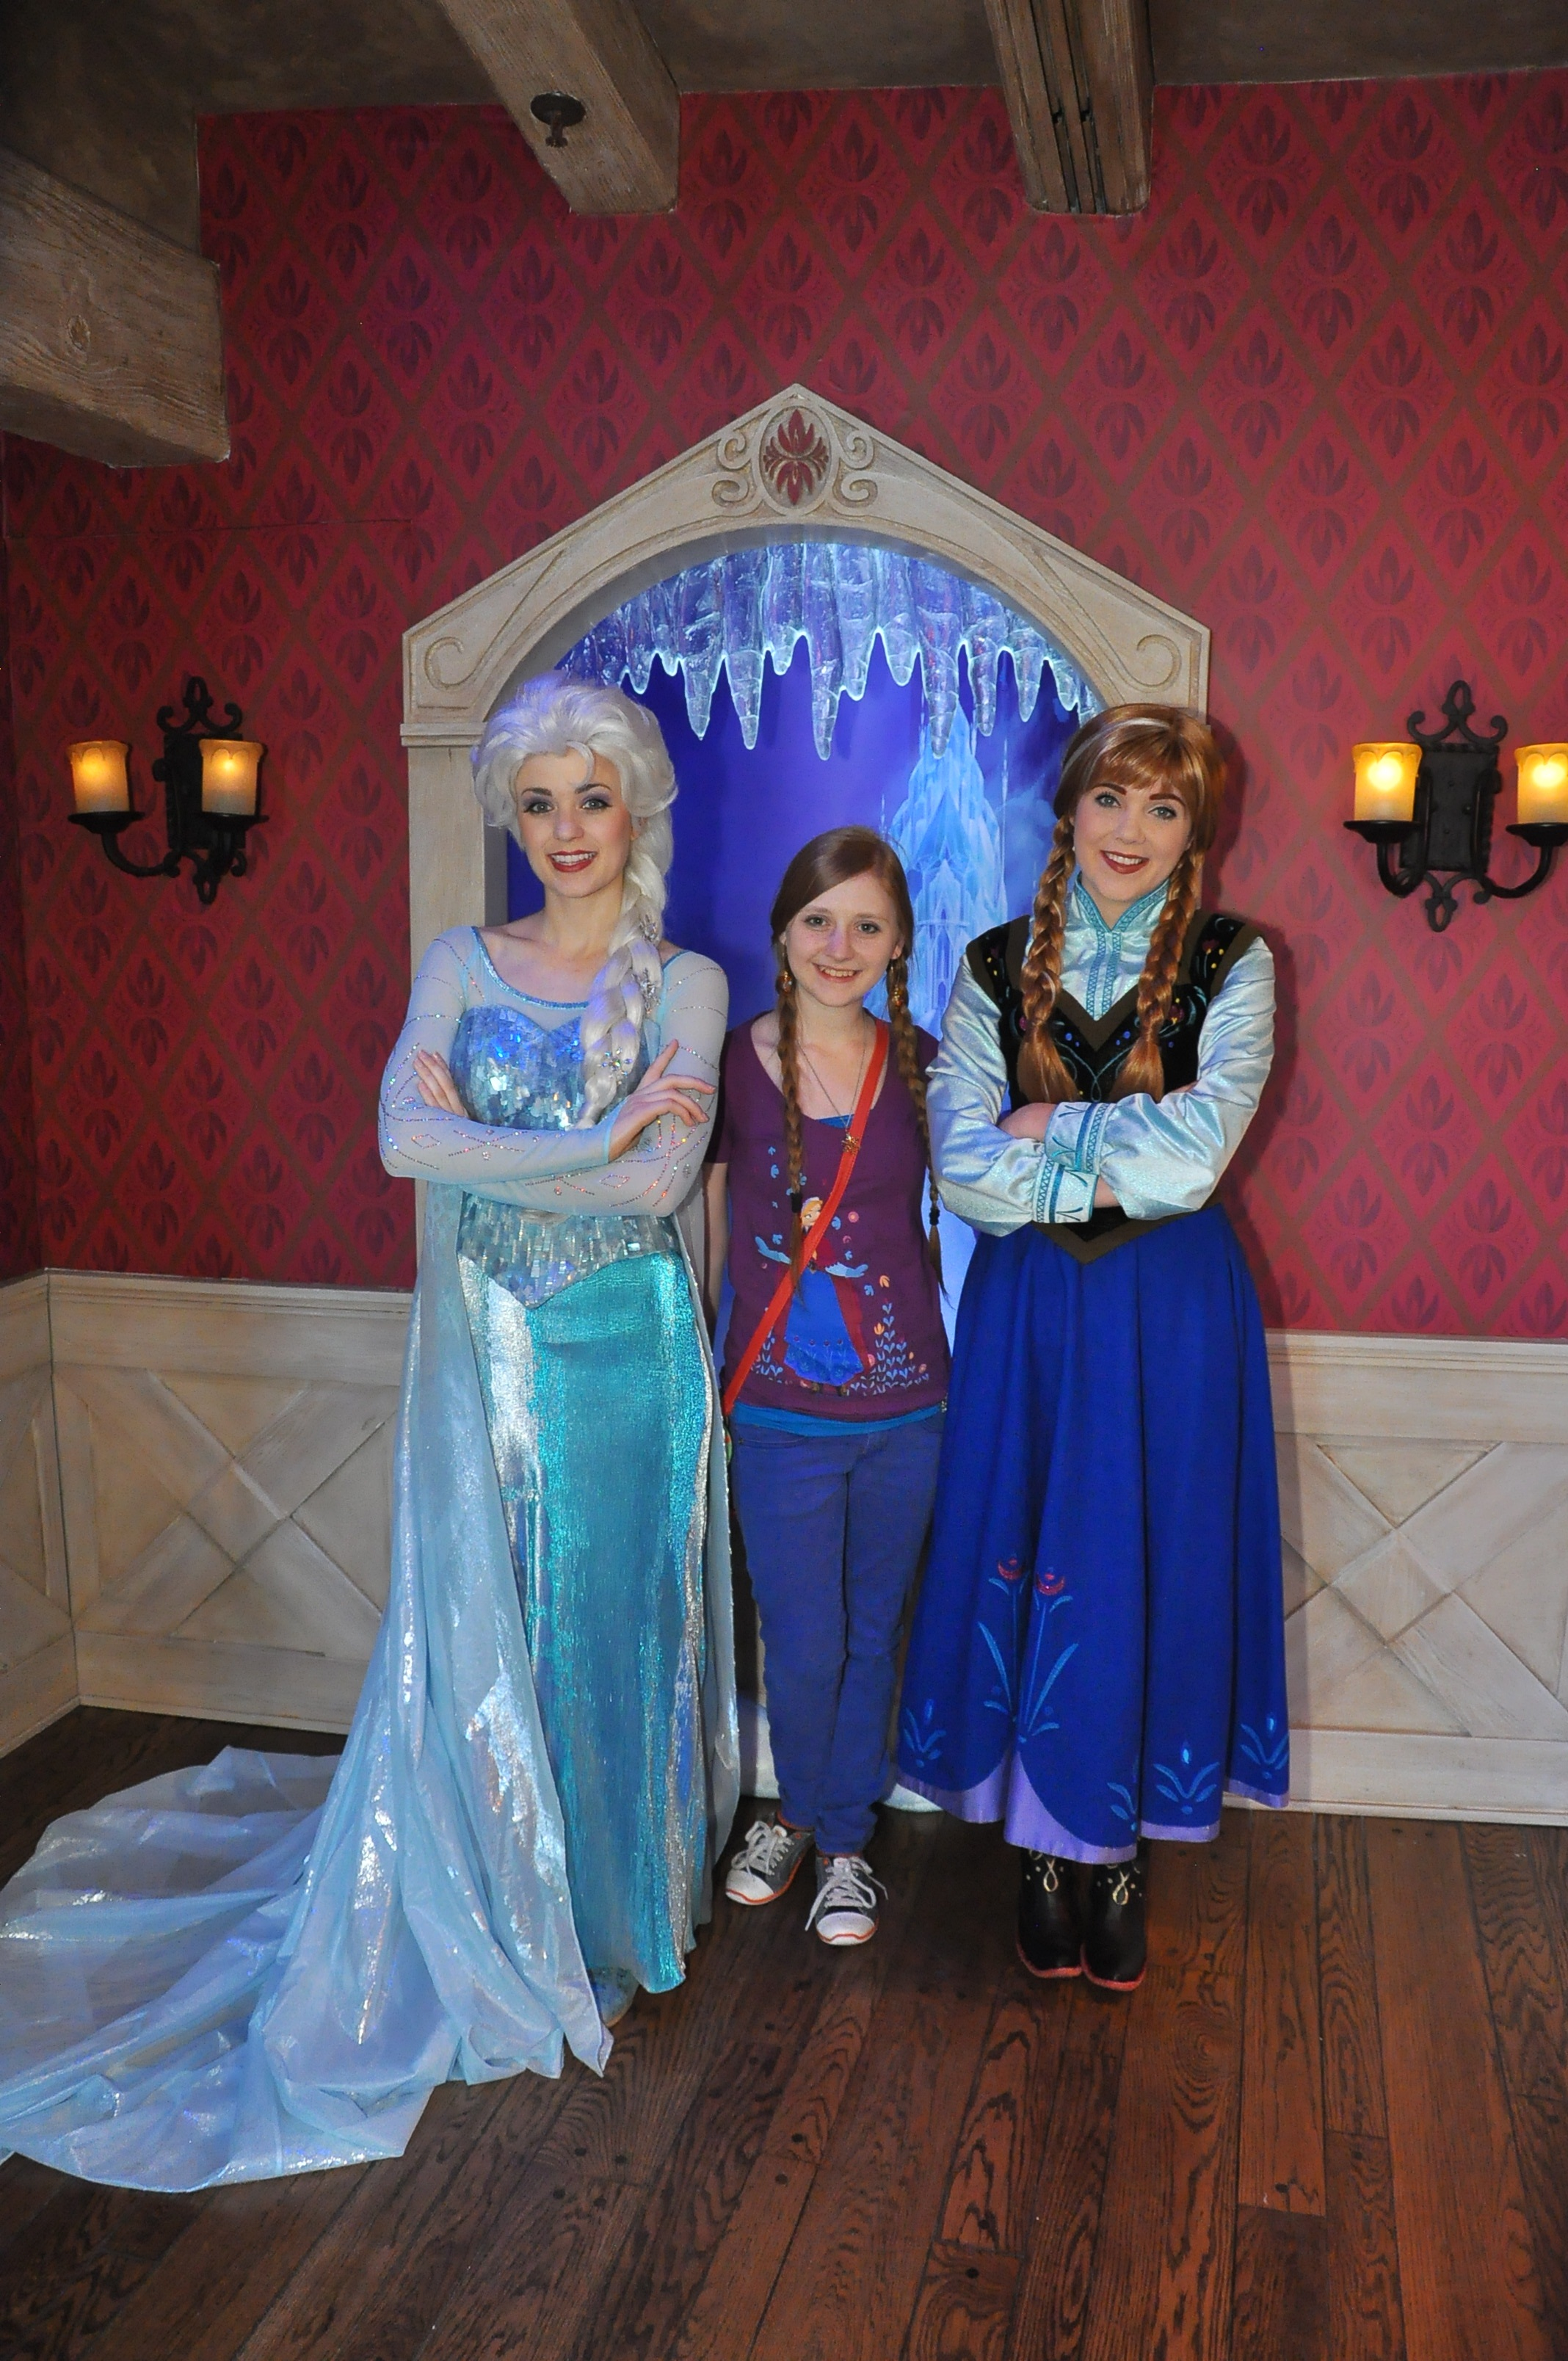 Frozens anna and elsa meet and greet at disneyland is it really frozens anna and elsa meet and greet at disneyland is it really worth it 52923350138 m4hsunfo